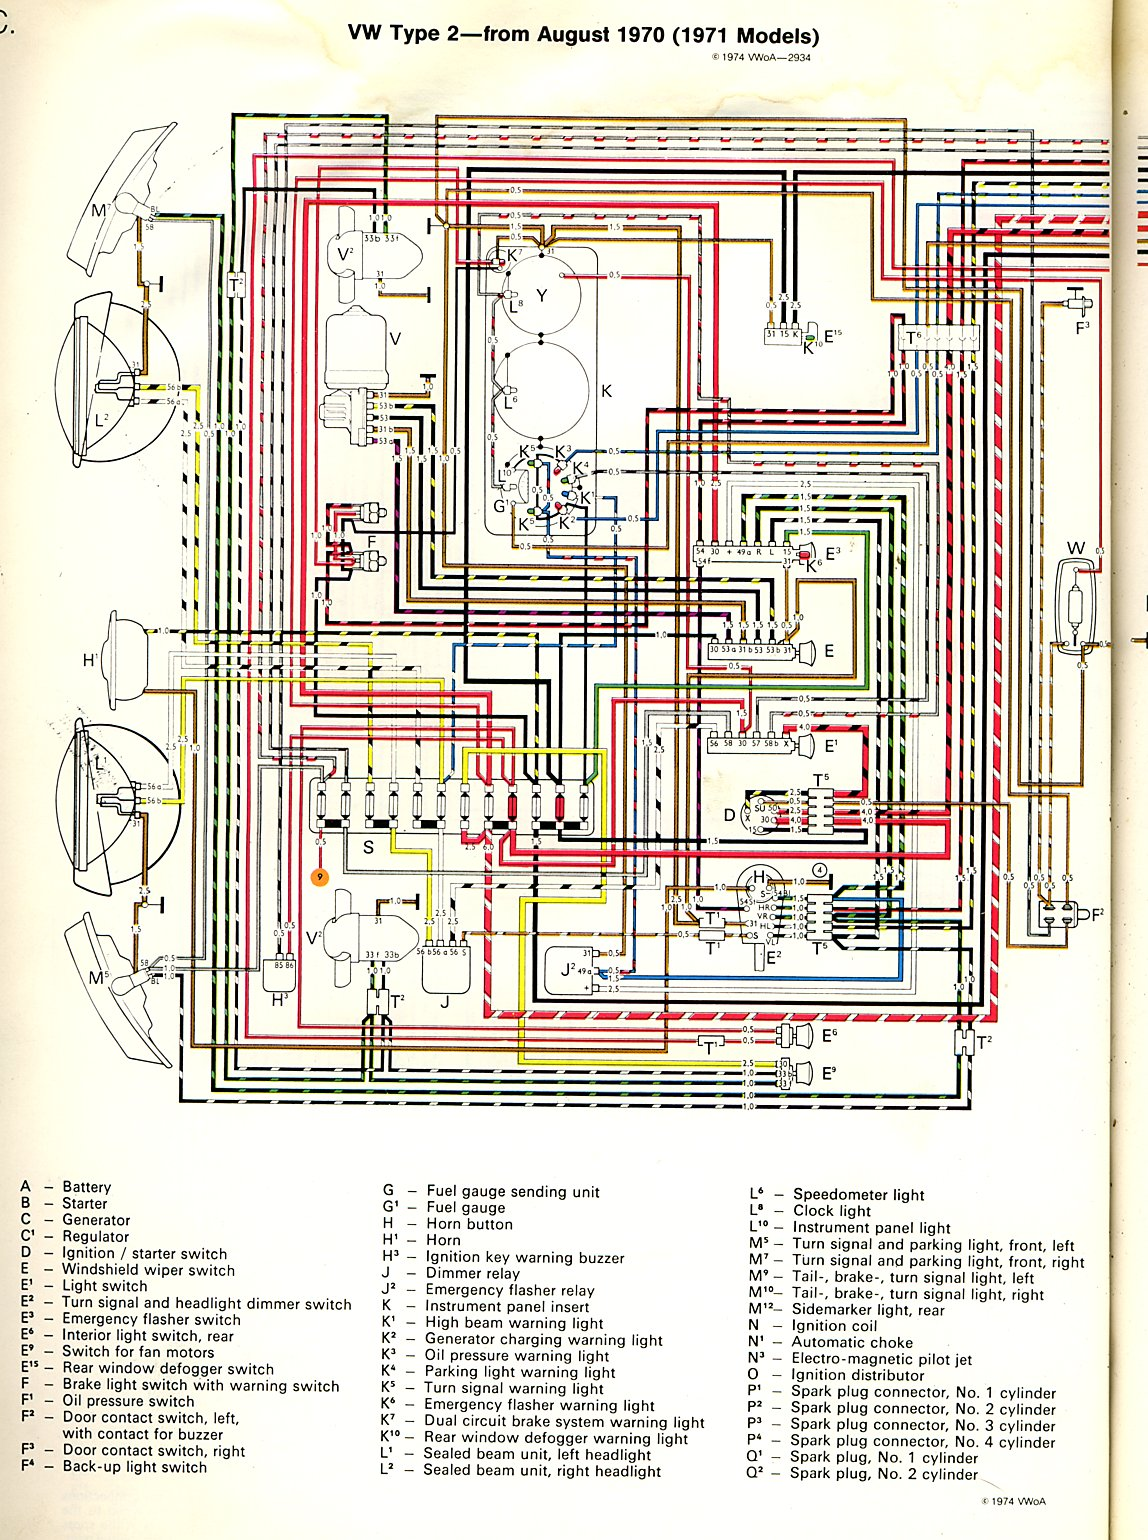 baybus_71a 71 vw bus wiring diagram 1970 vw bus fuse box diagram \u2022 wiring Wiring Harness Diagram at mifinder.co